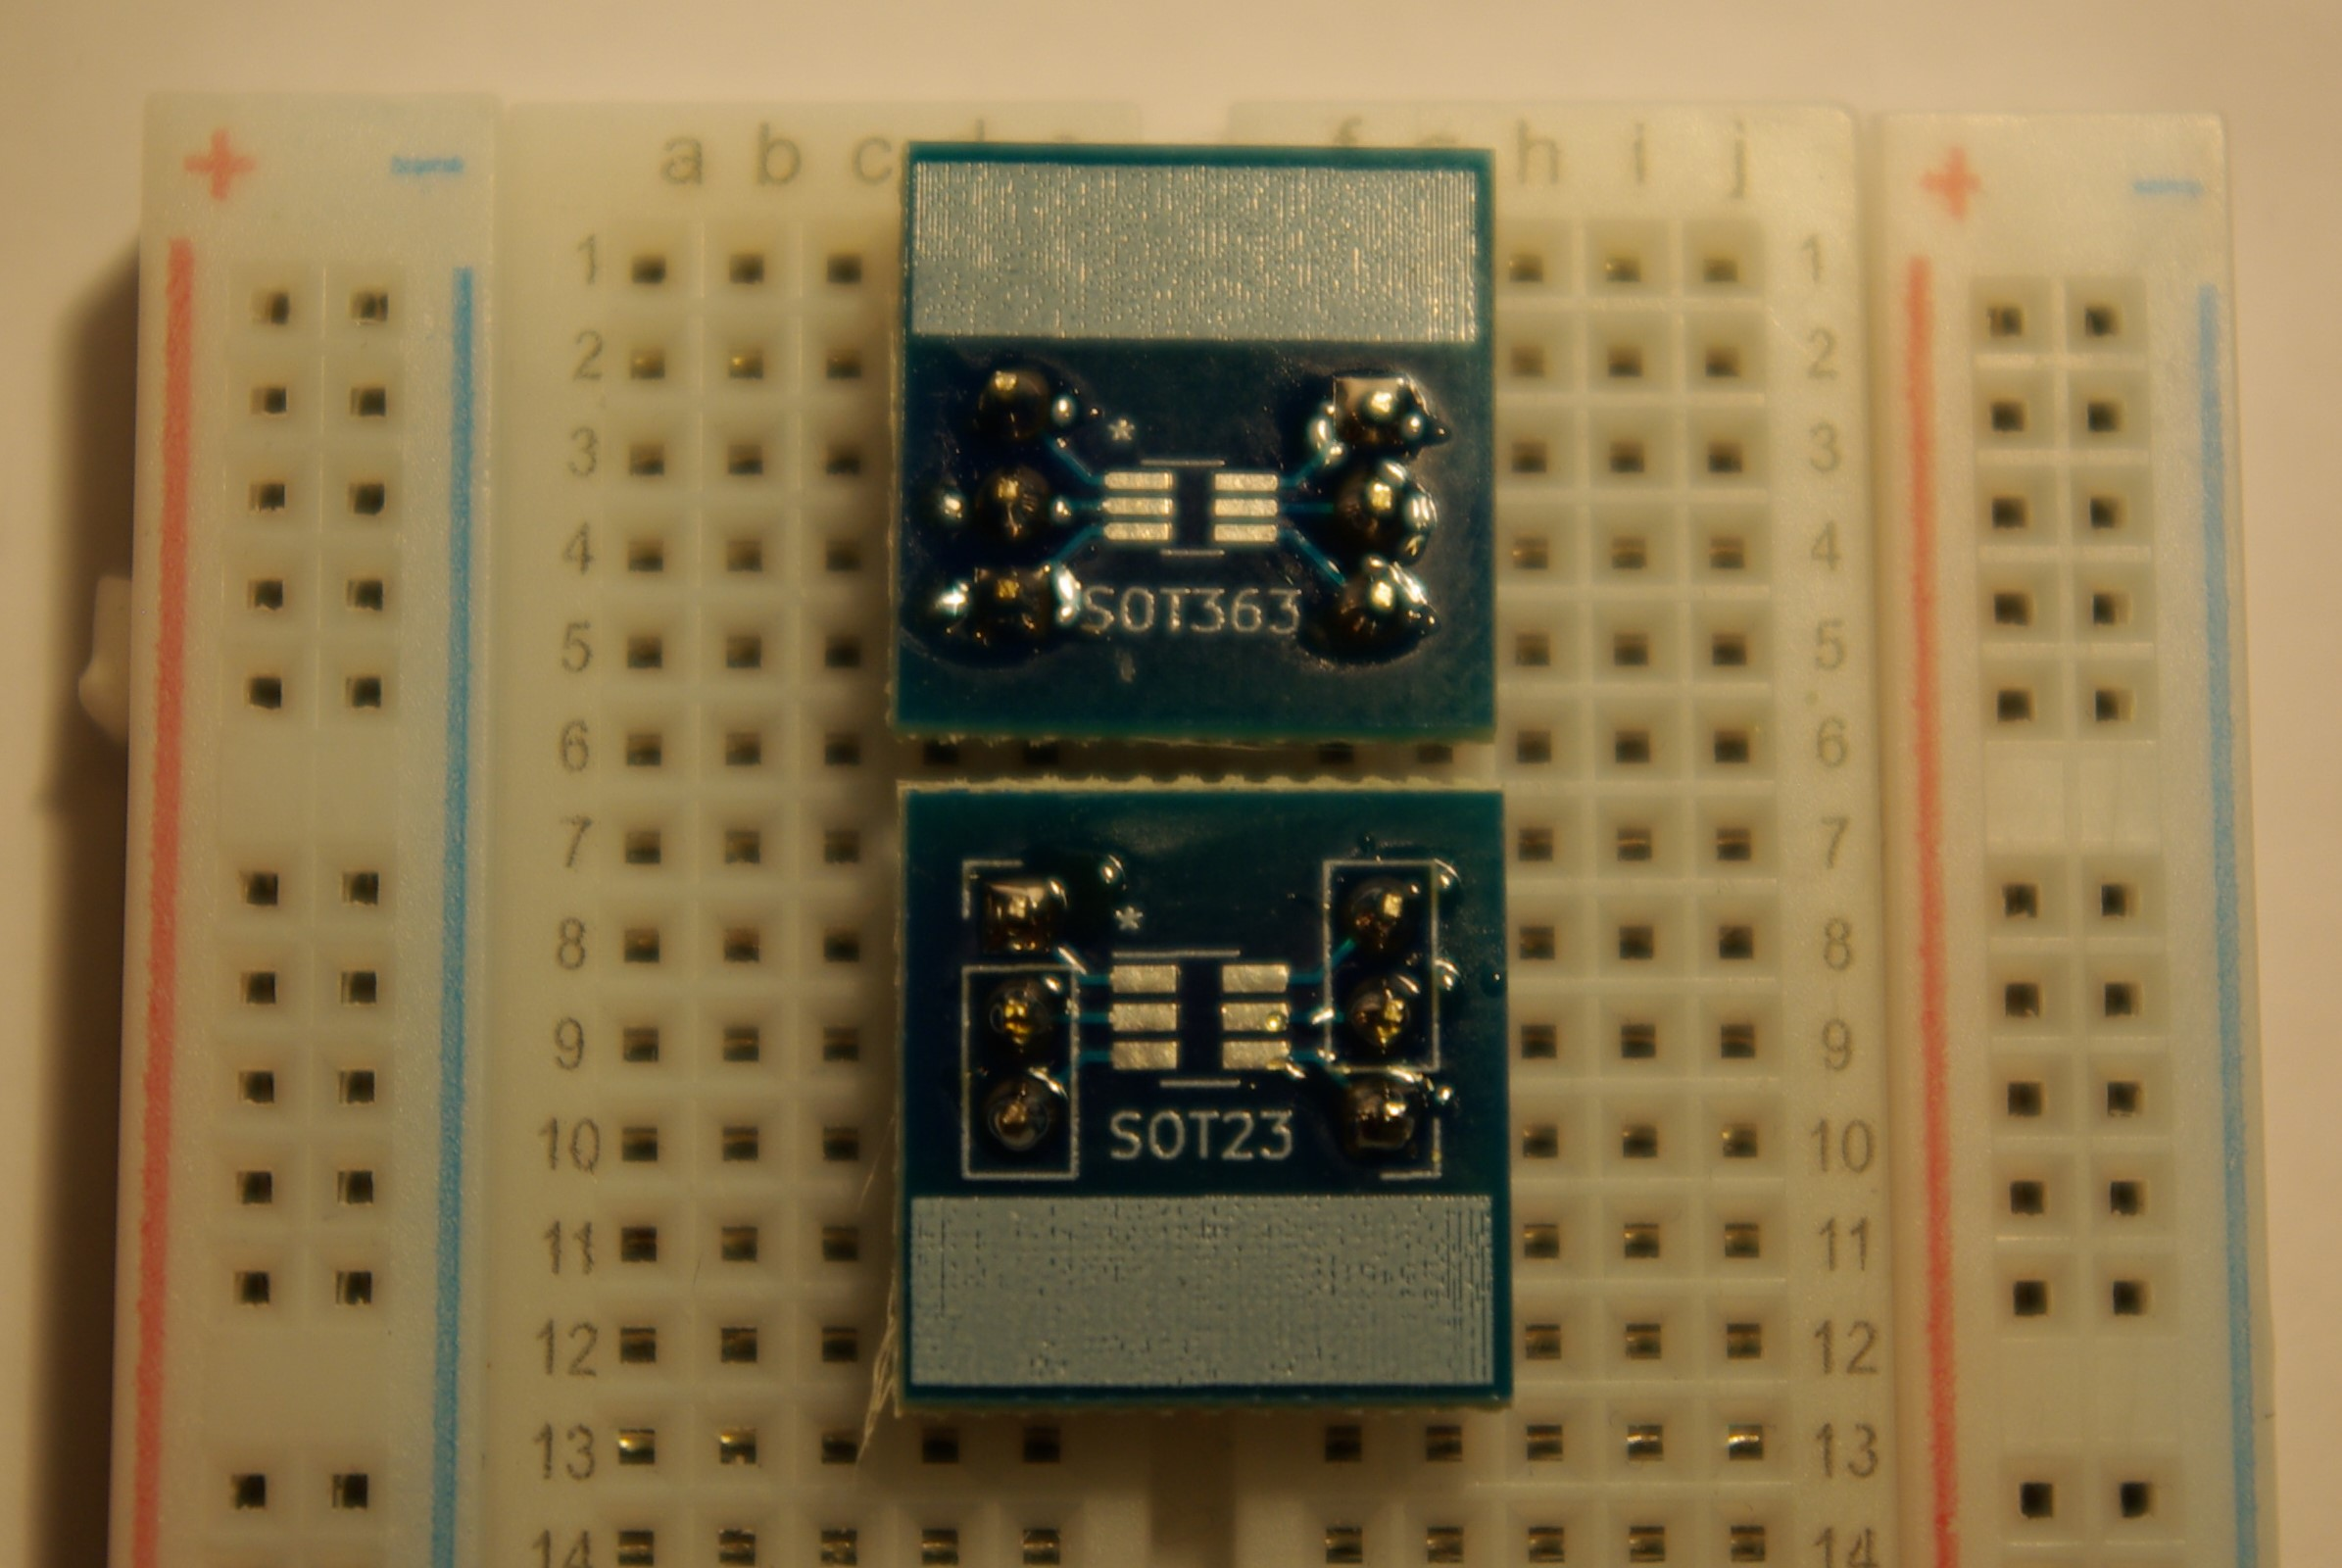 SOT363/SOT23 Breakout Boards in breadboard